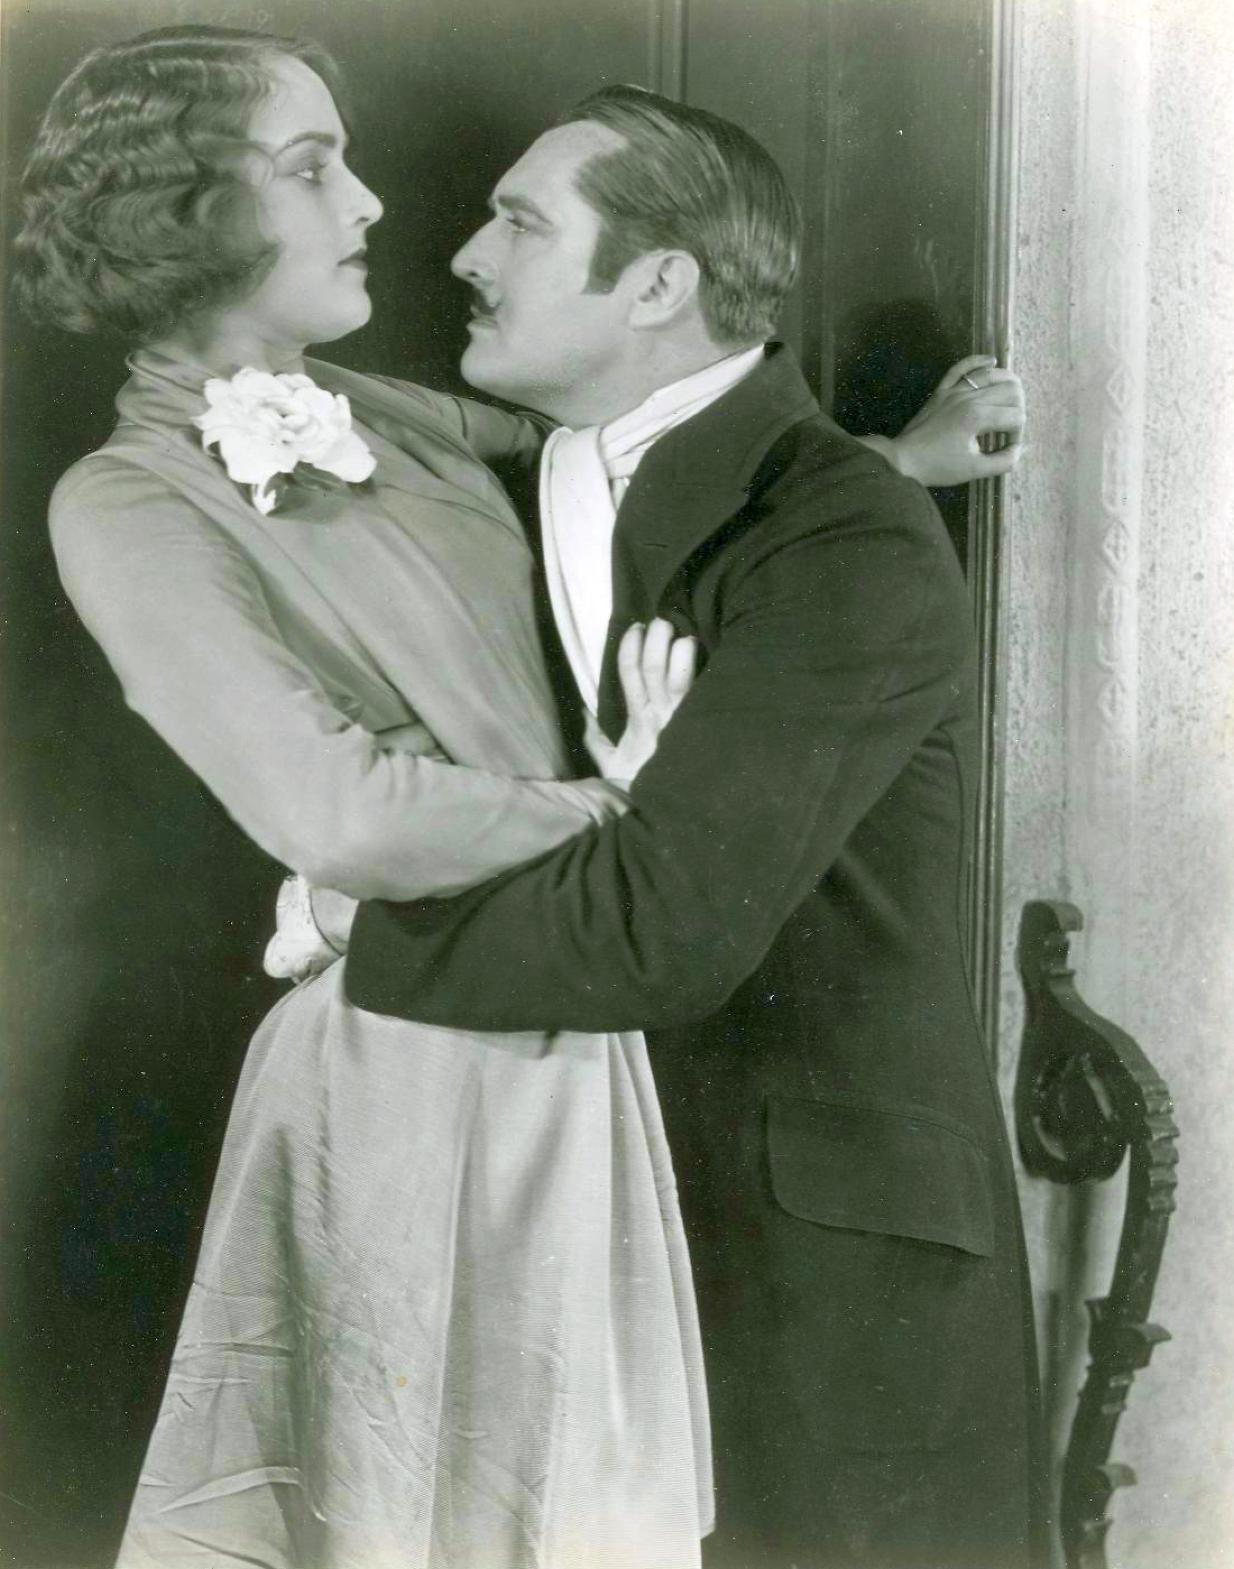 carole lombard marriage in transit 01c